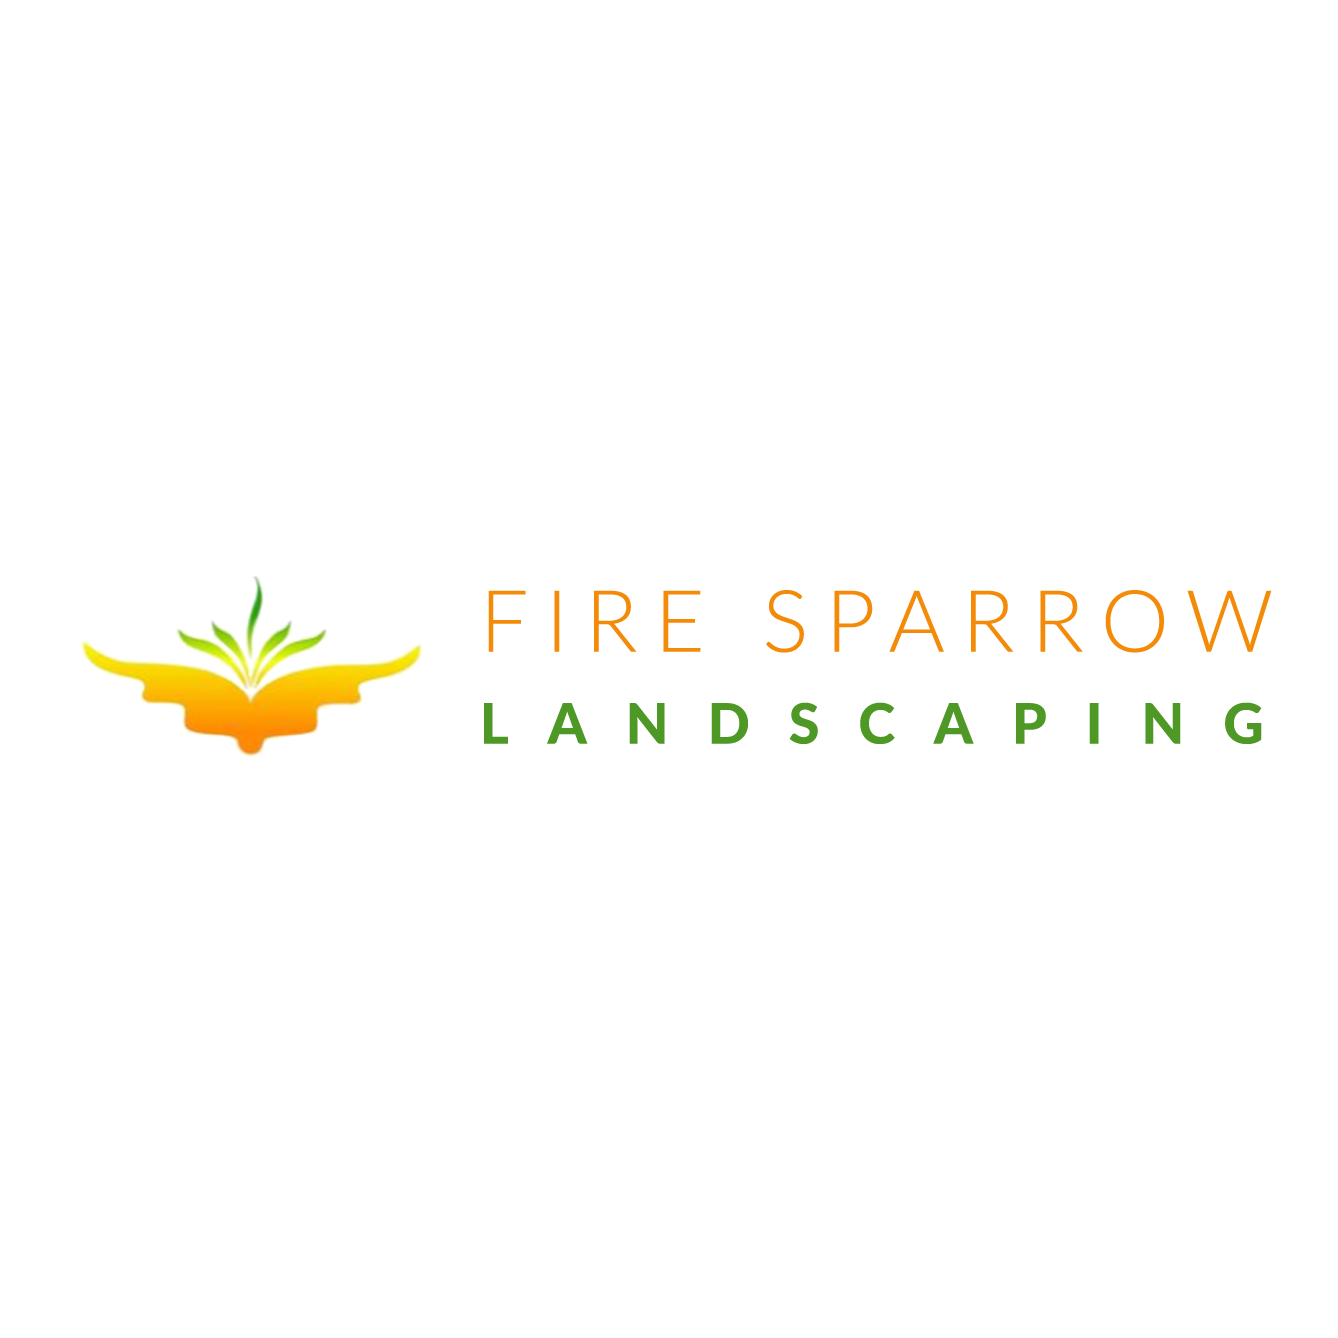 Fire Sparrow Landscaping